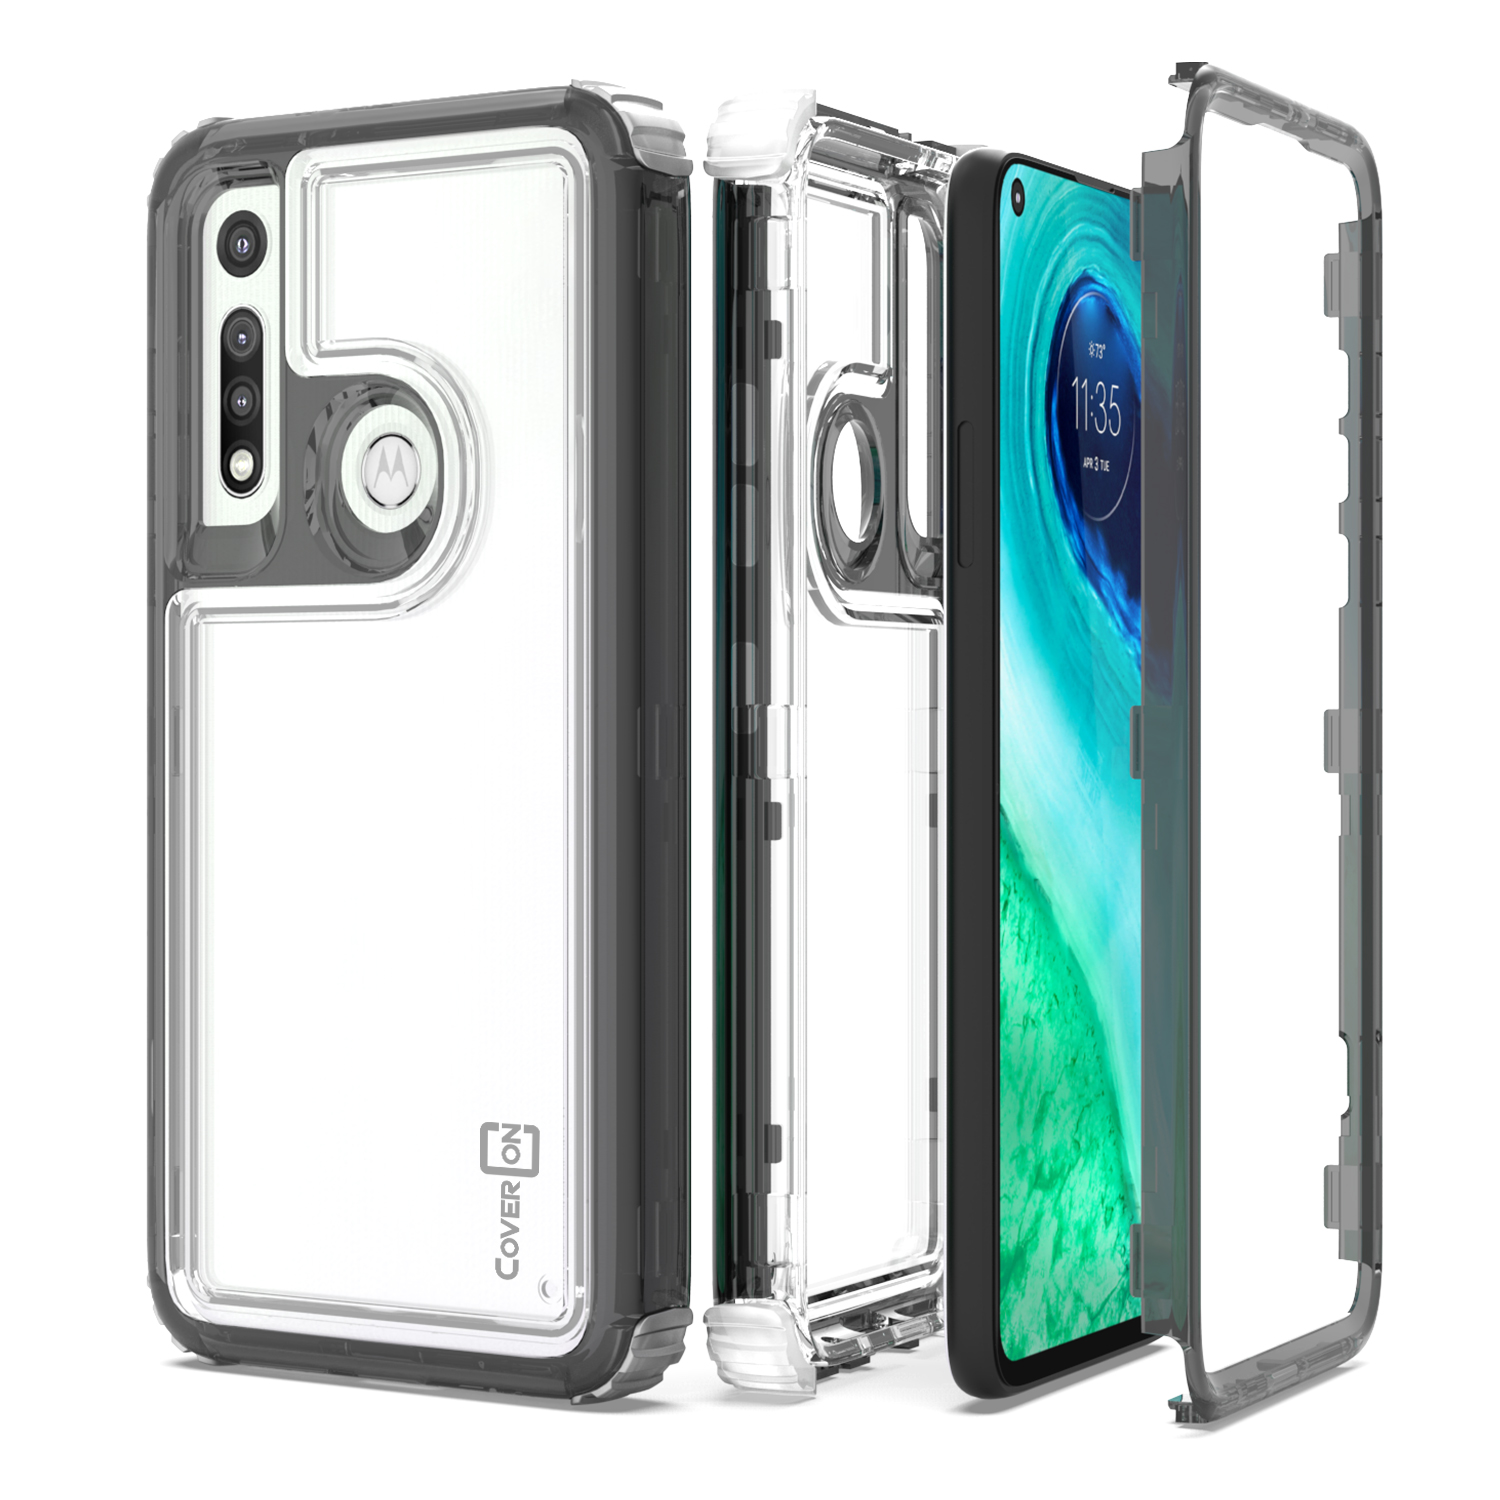 low priced 21a7f 94966 Details about Hybrid Slim Fit Hard Back Cover Case For Sony Xperia XZ1  Compact Black / Clear